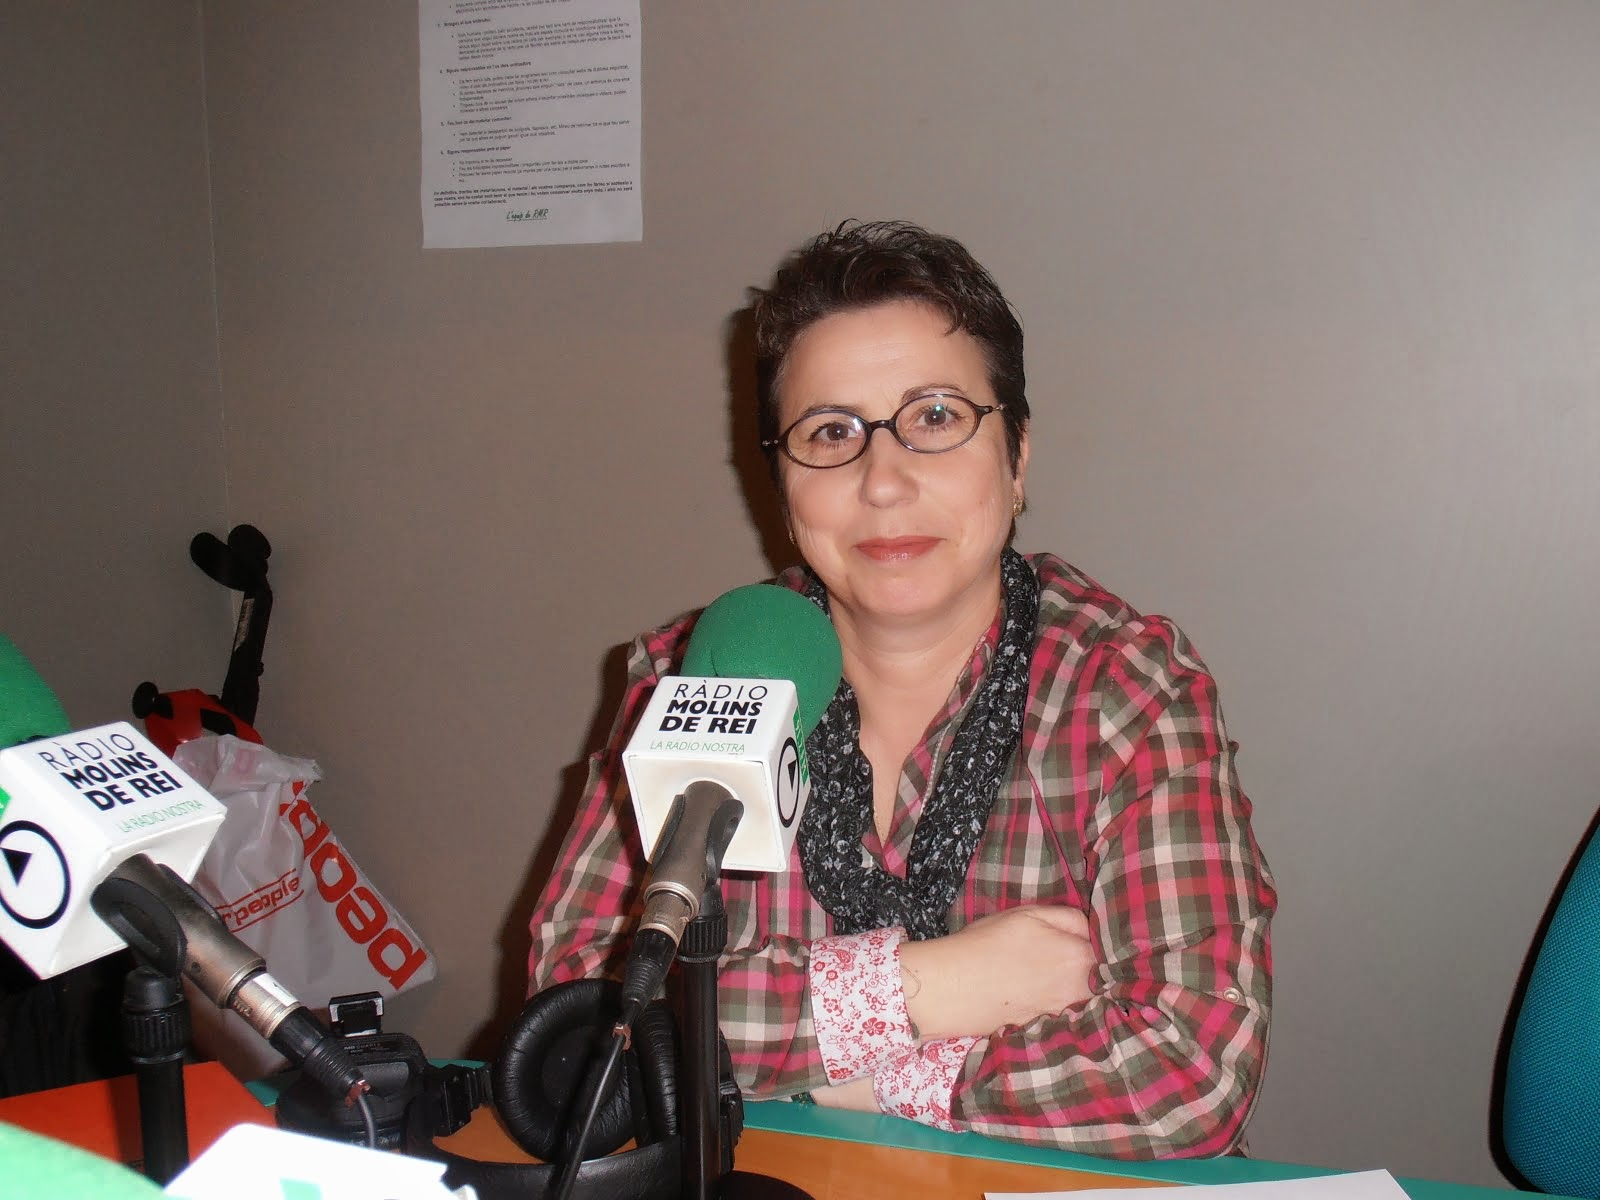 Radio Molins de  Rei